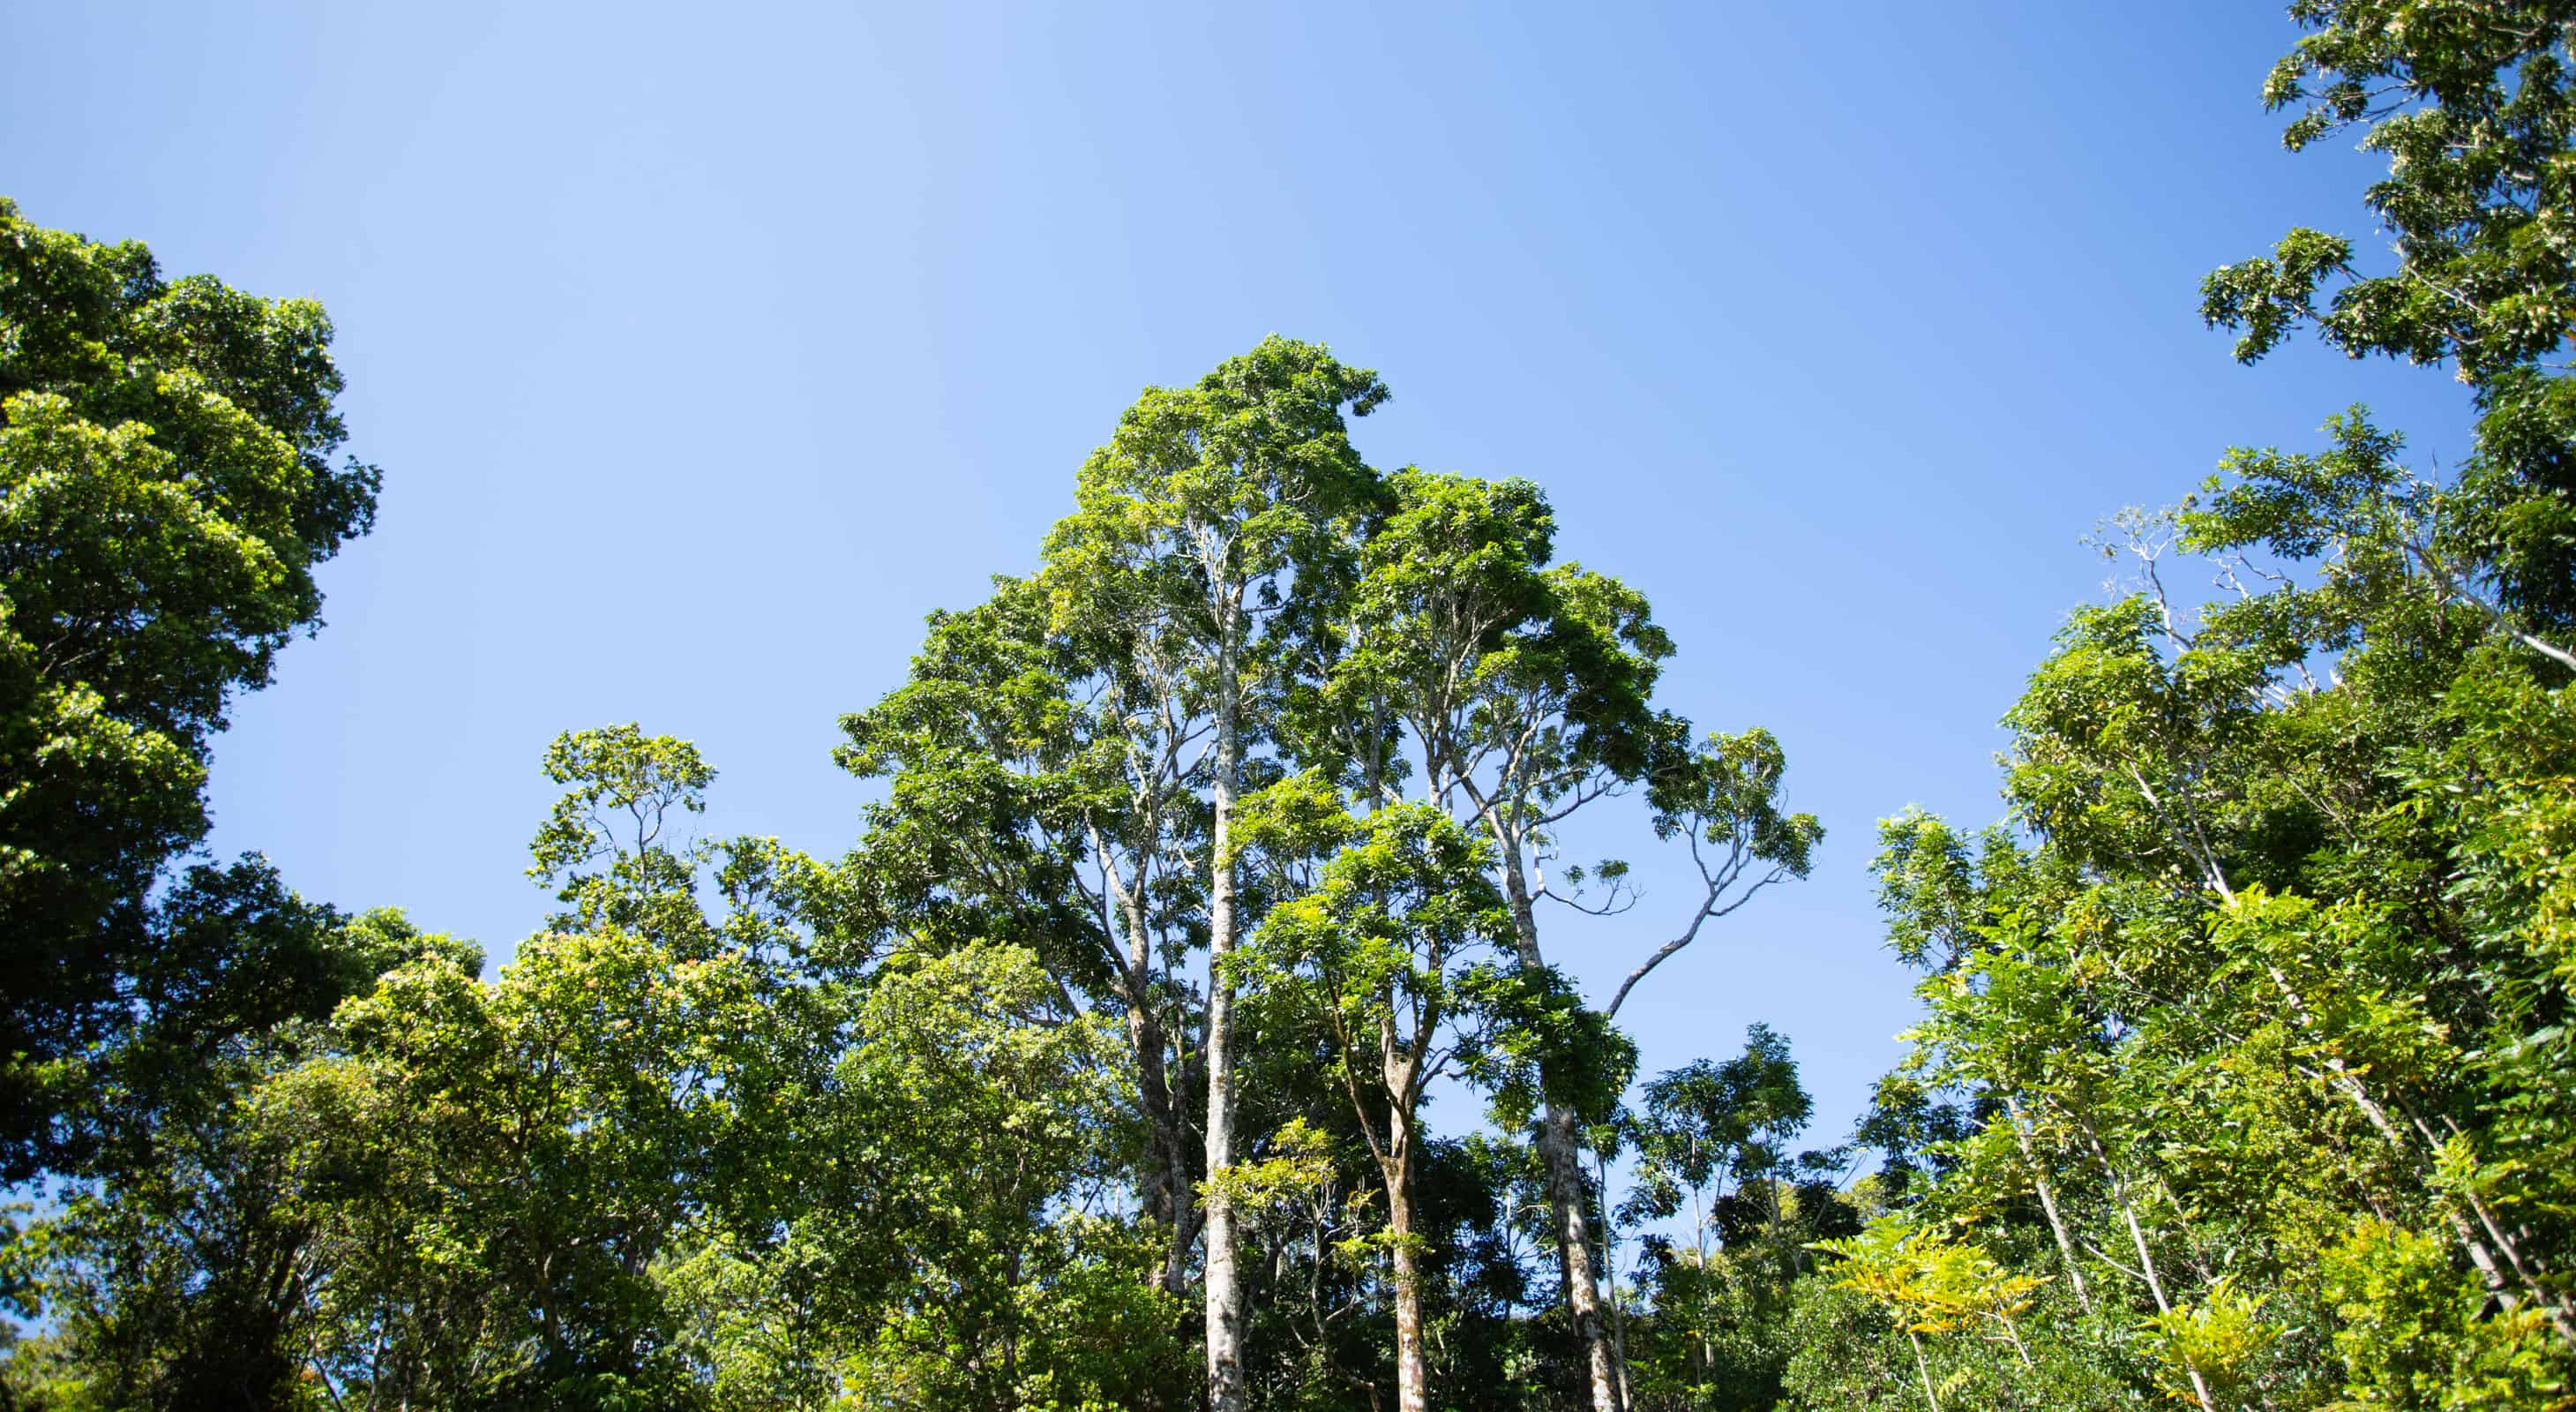 A large tree growing in a forest on Hawaii island